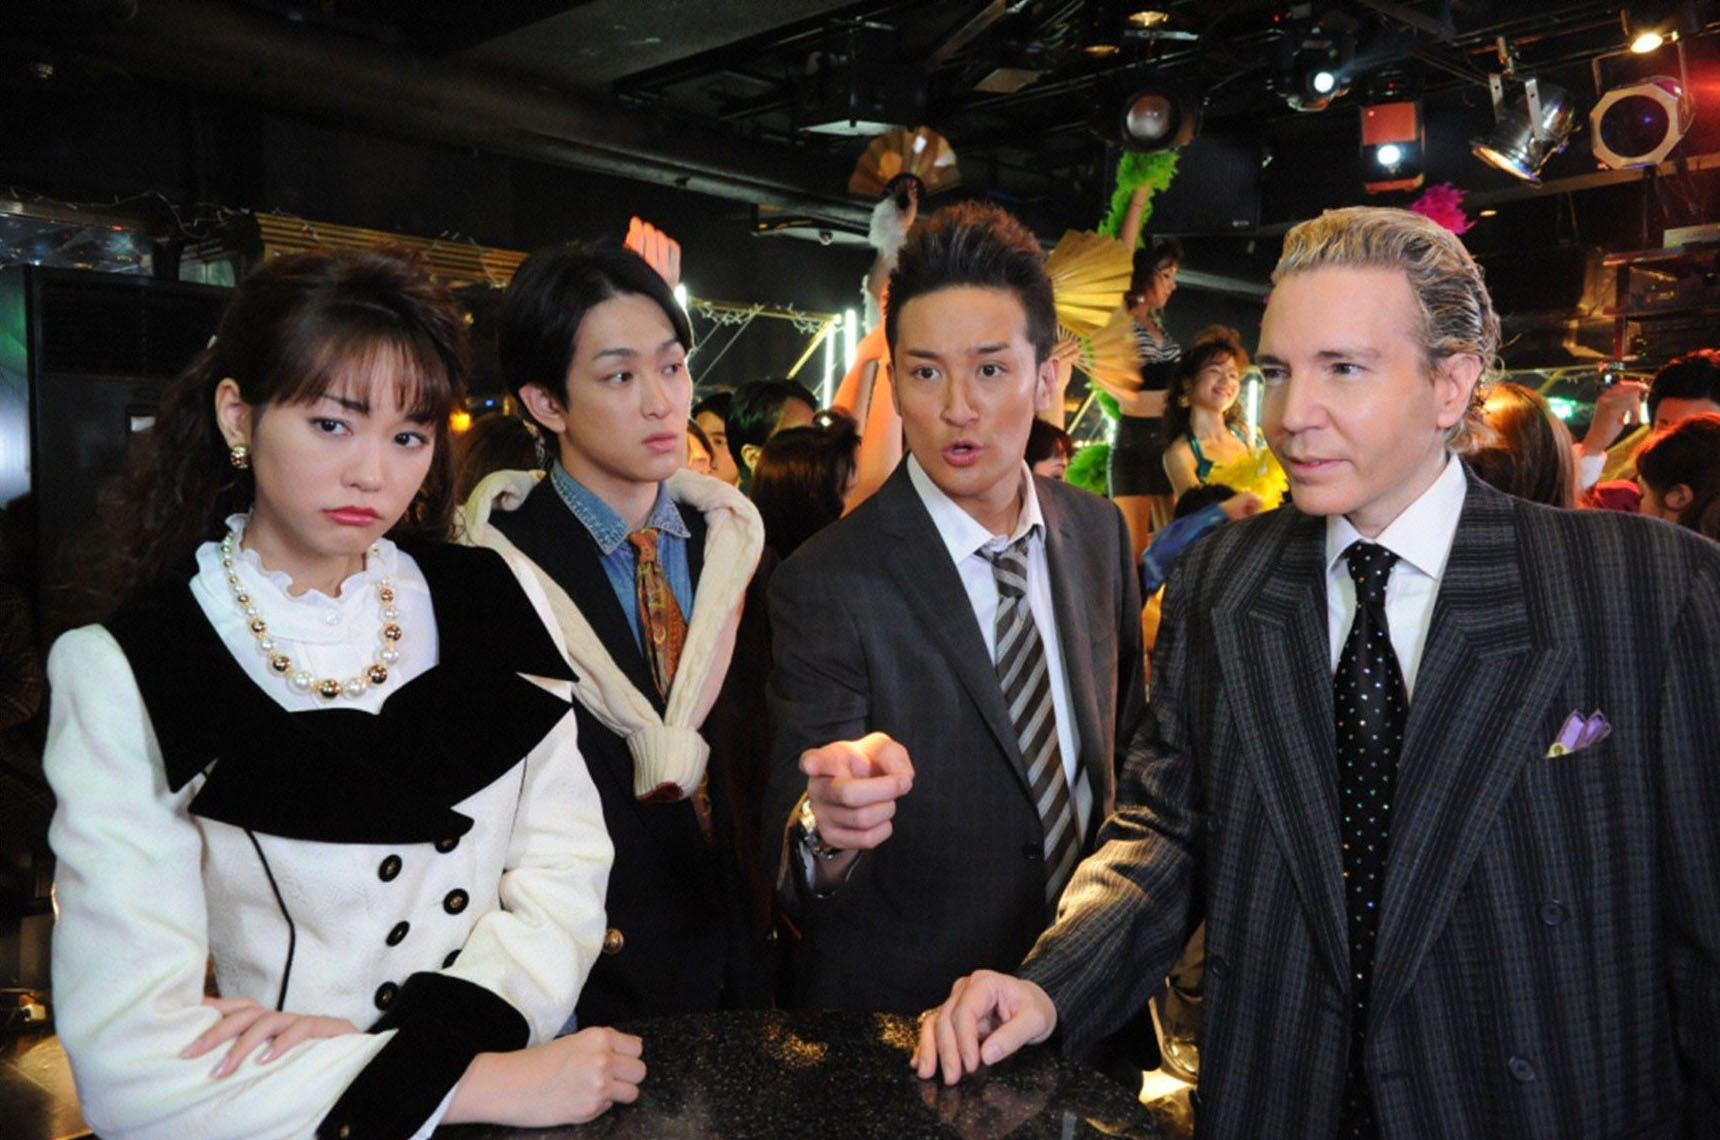 Back to the bubble: From left, Mirei Kiritani as Shoko Mano, Yu Yokoyama as Kiyofumi Takano, Masahiro Matsuoka as Teppei Kogure and guest star Dave Spector in a flashback scene from TV Asahi's '13-sai no Hello Work.' | TV ASAHI